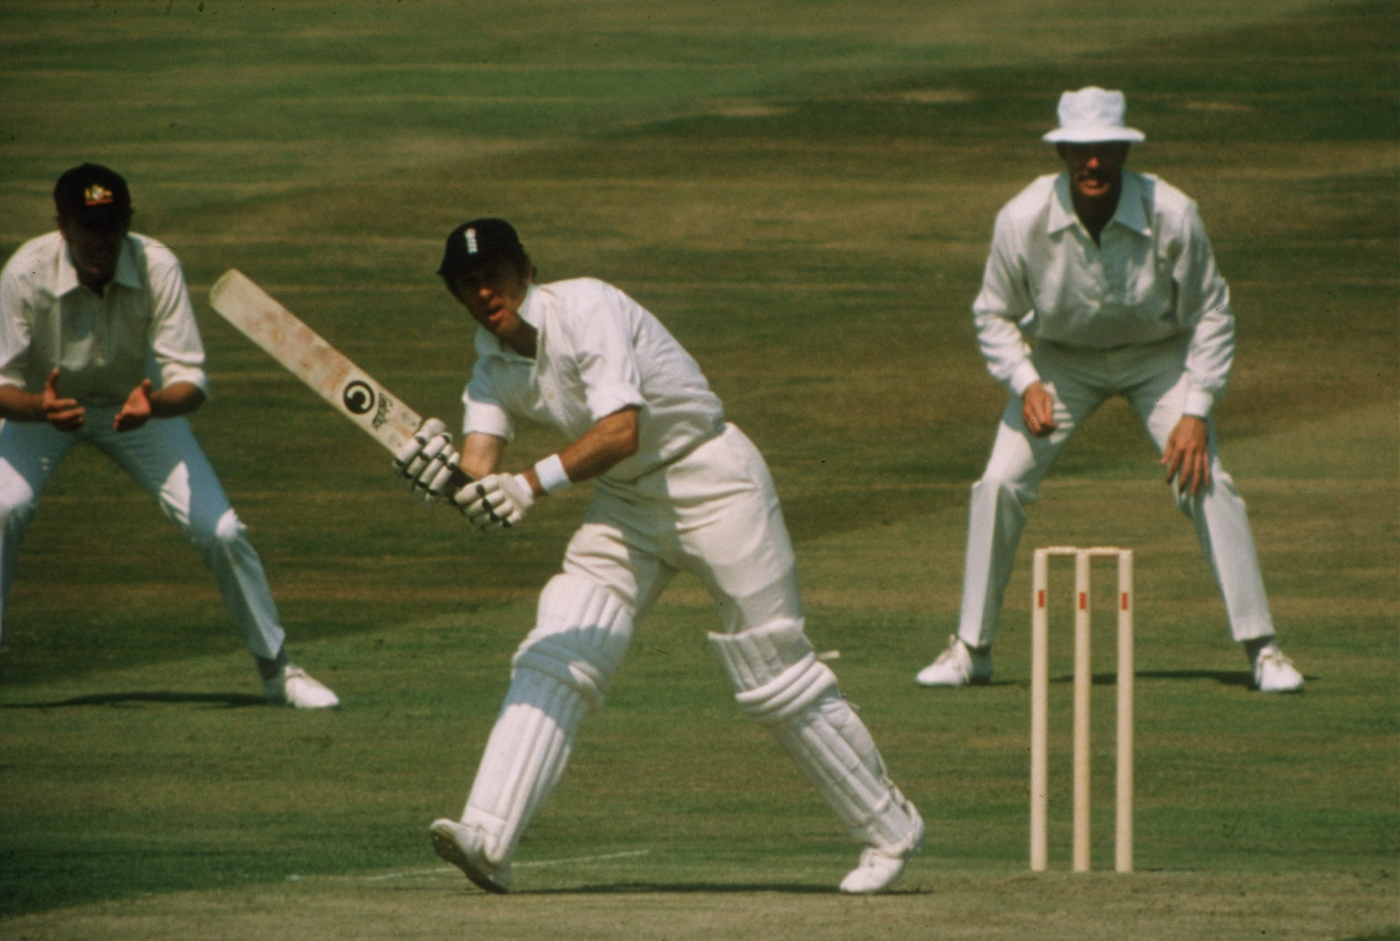 Boycs en route to his 100th hundred, at Headingley in 1977. Would he have got there if he had been batting No. 1? Fat chance